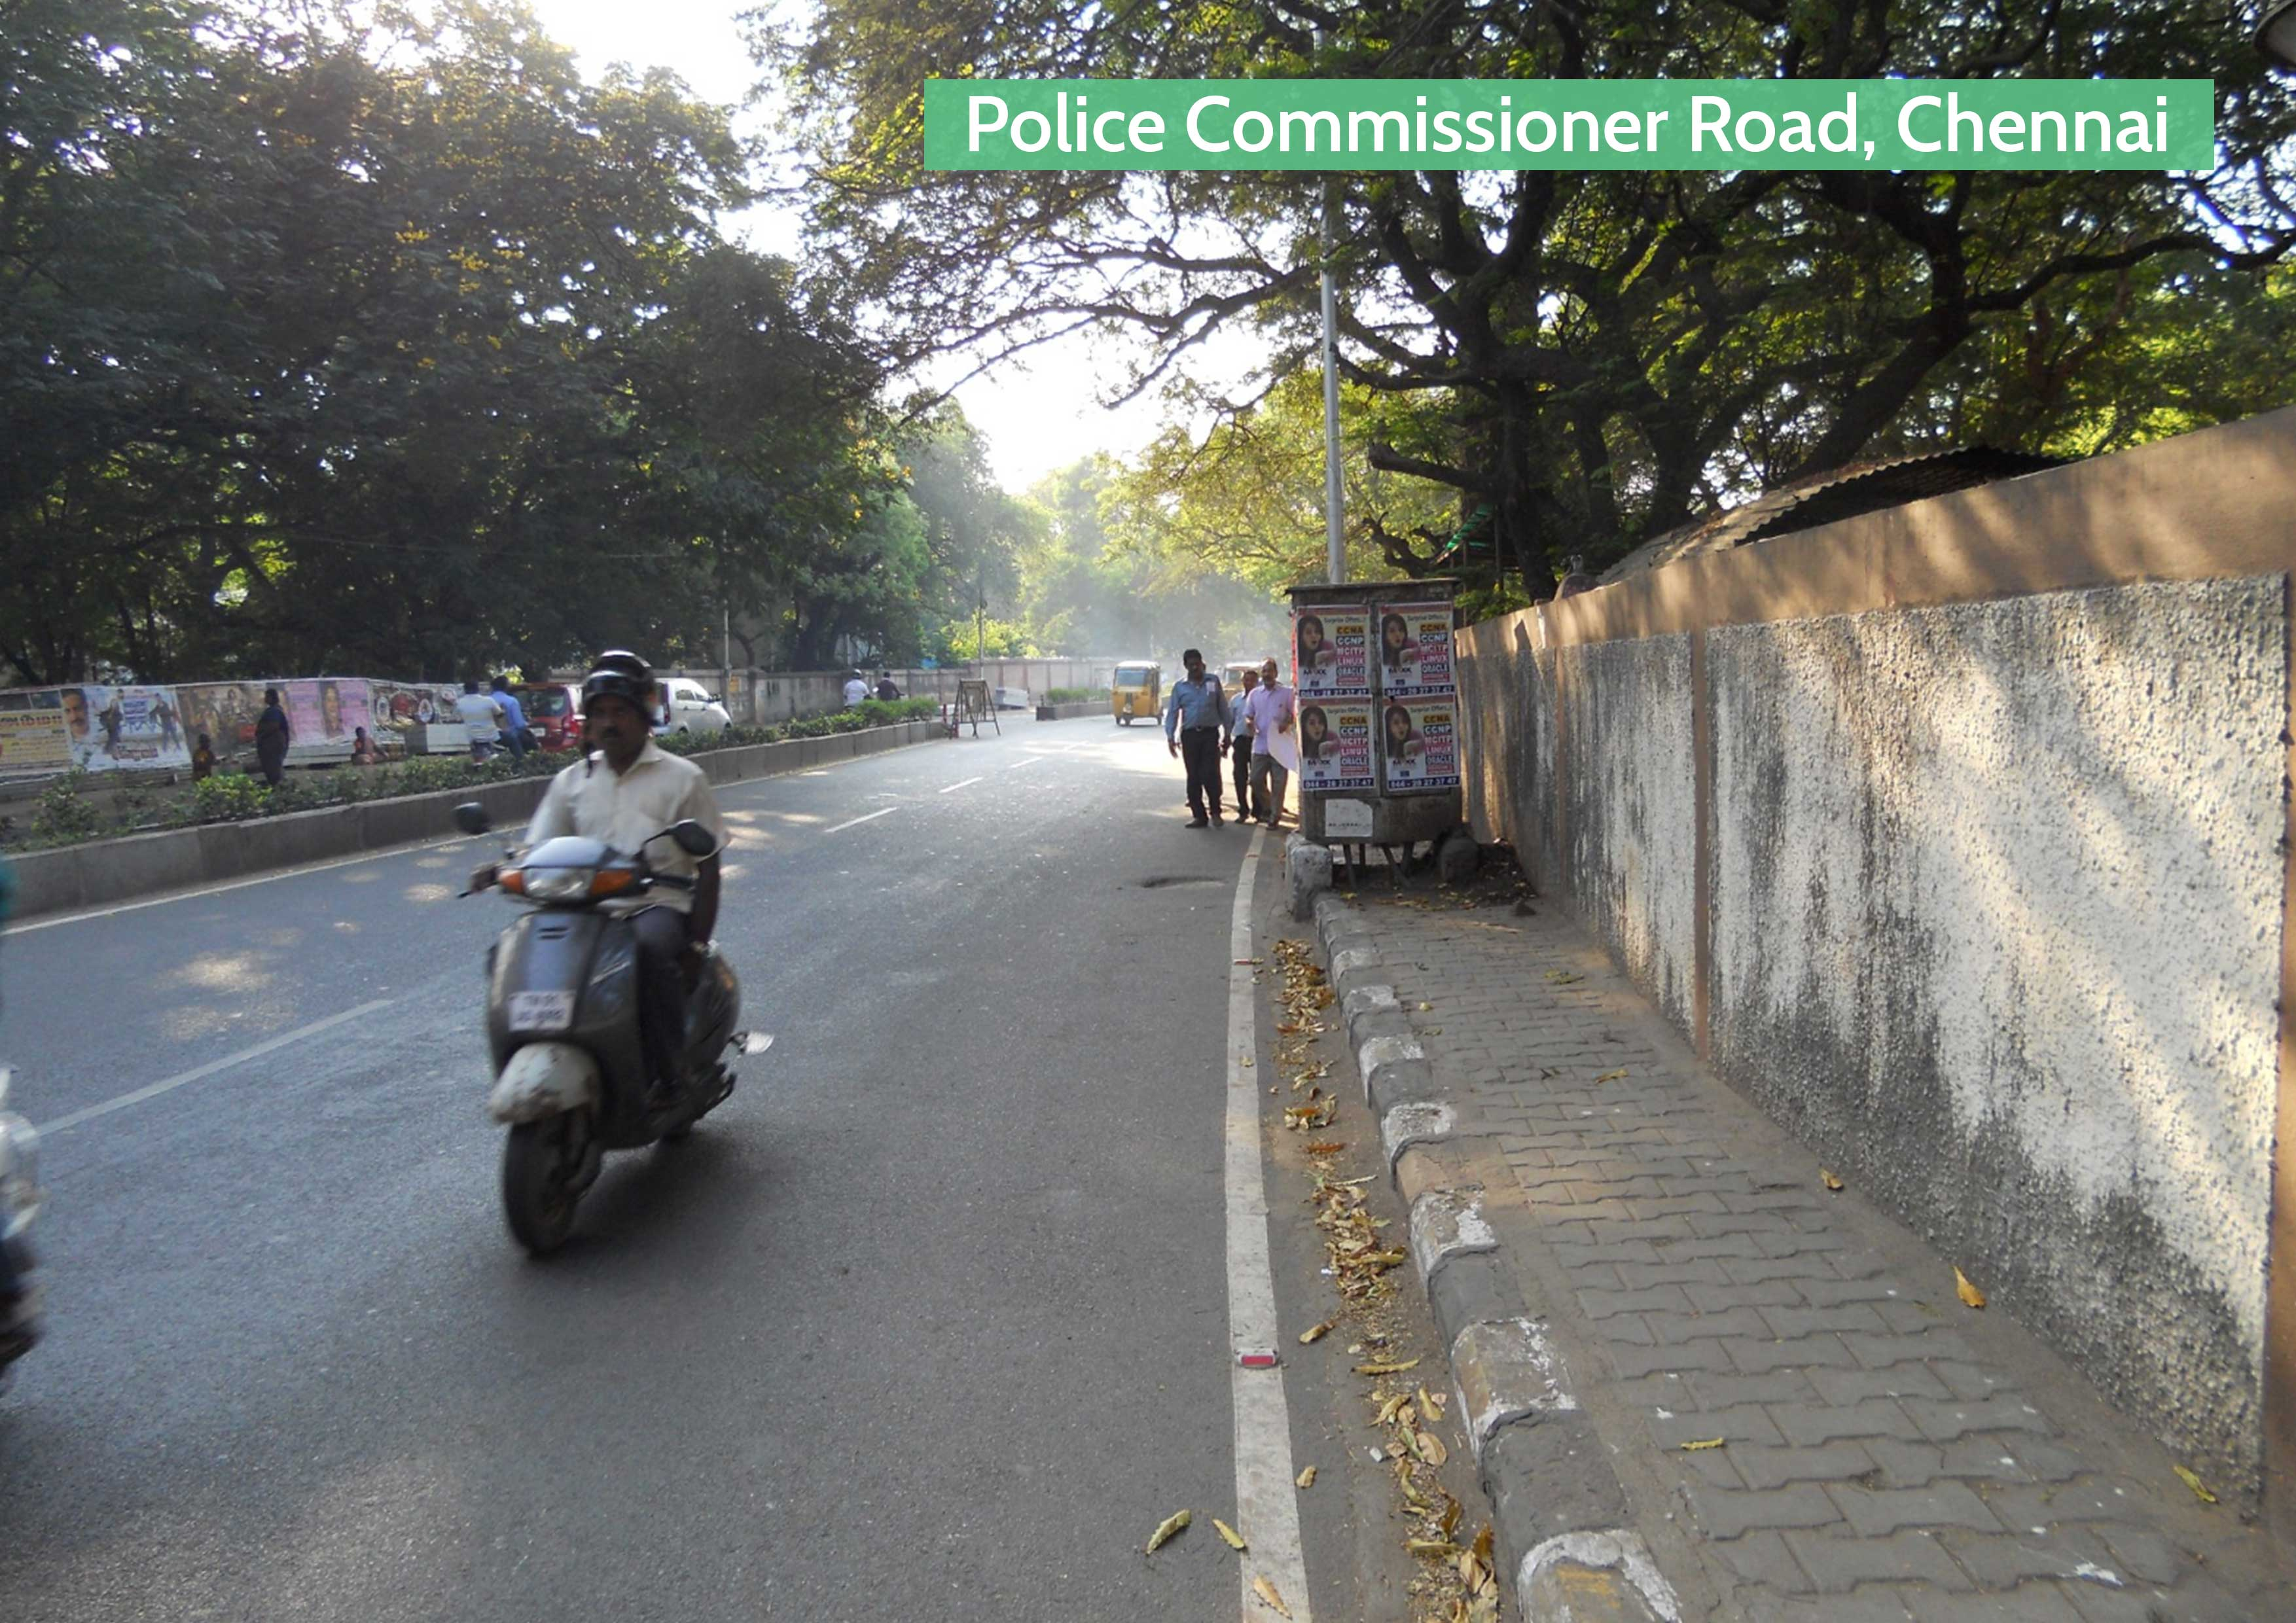 Before-Police Commissioner Road, Chennai